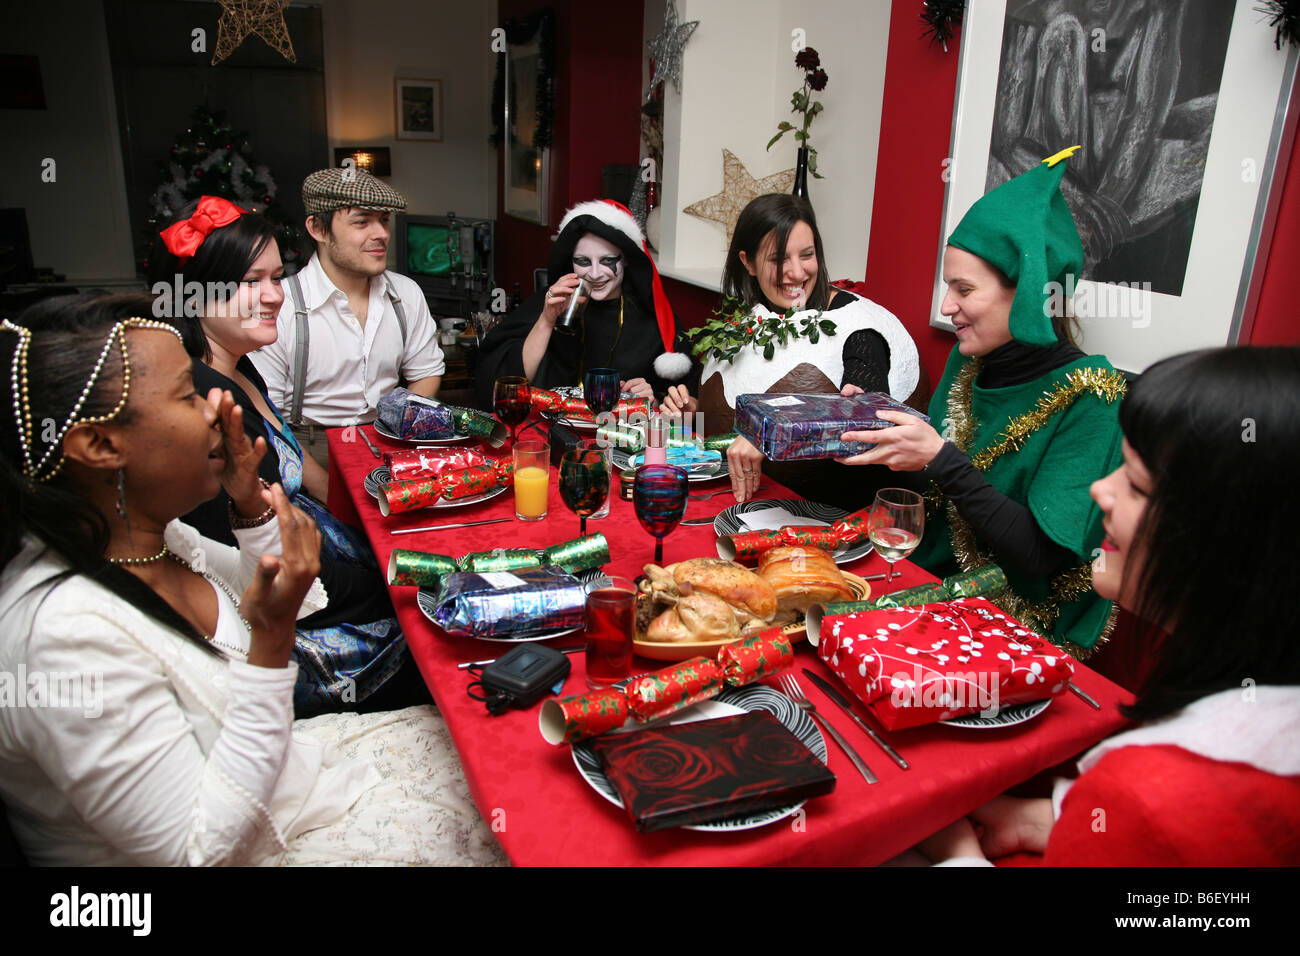 Christmas Dinner Party.A Group Of Friends Having A Christmas Dinner Party Stock